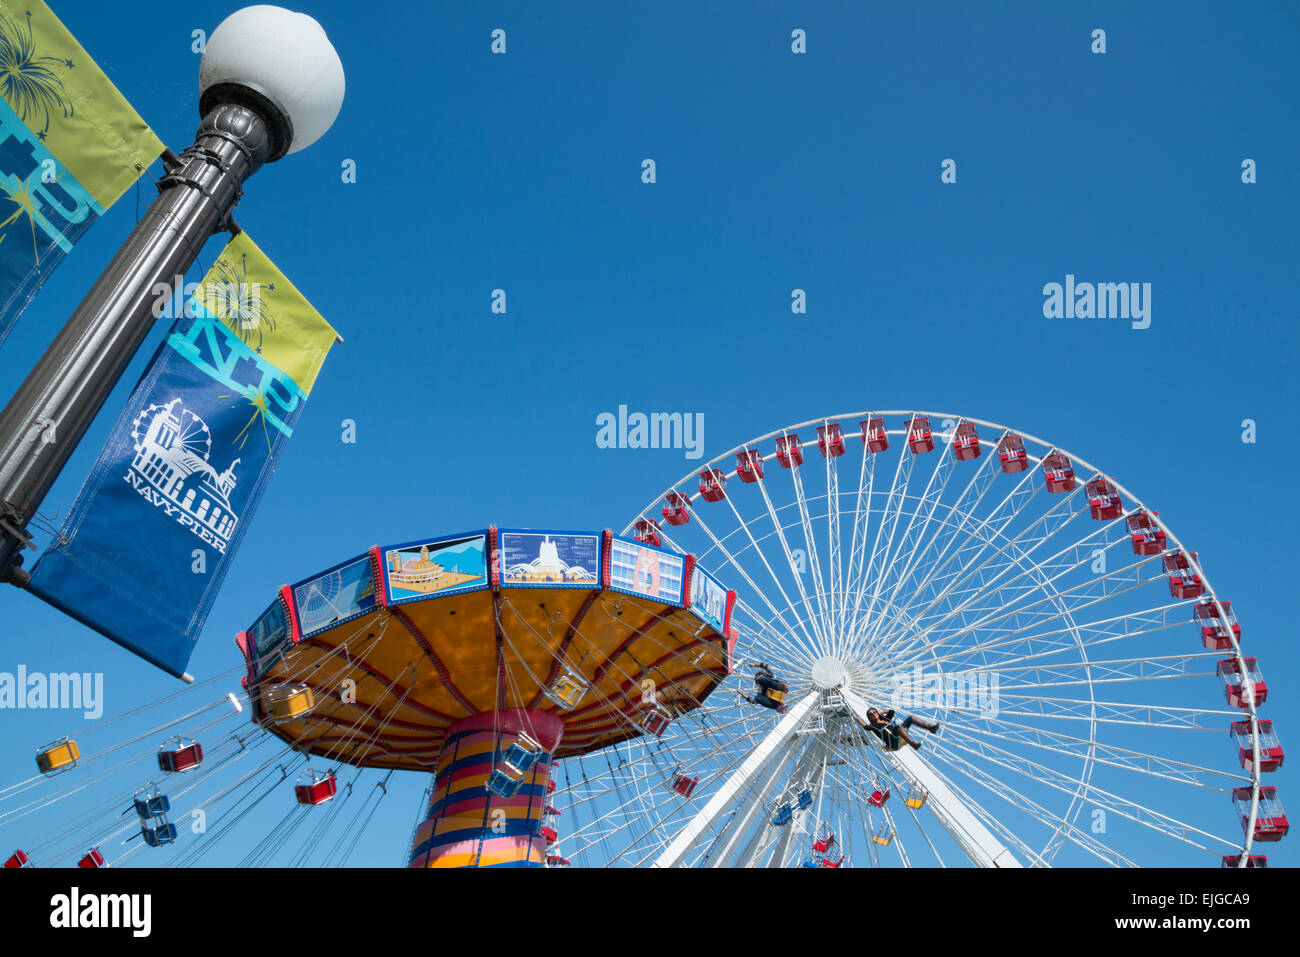 Navy pier. Downtown Chicago. Illinois. USA. - Stock Image